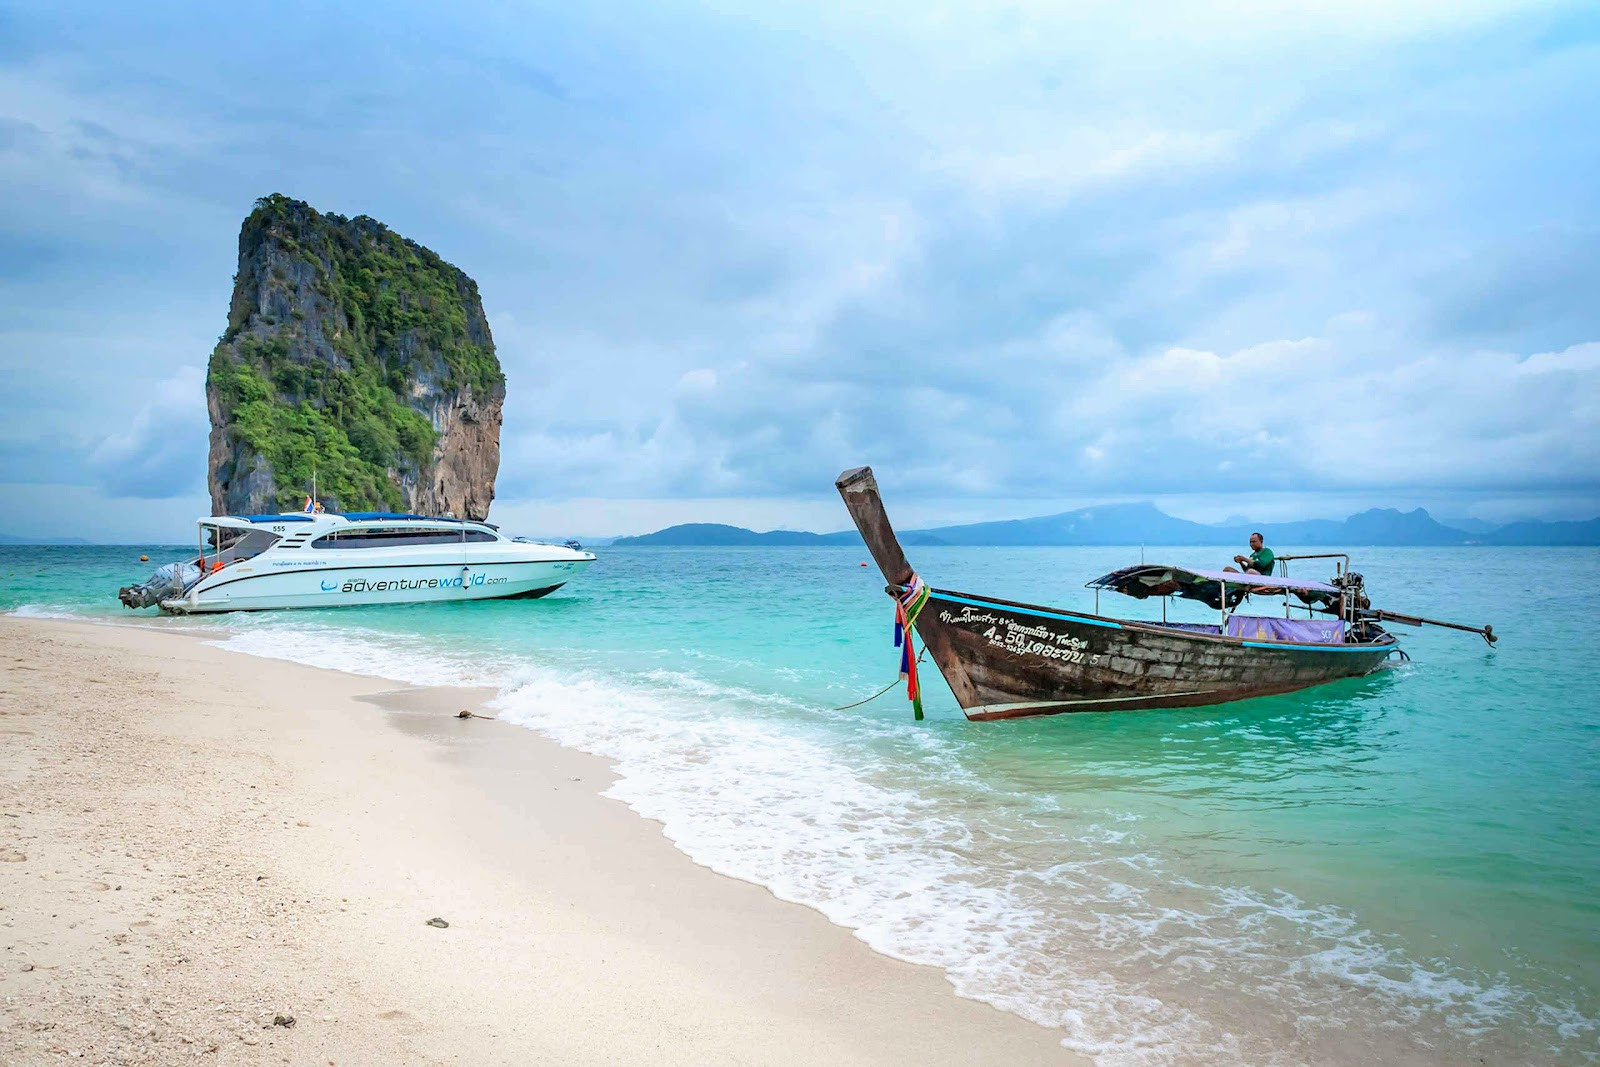 Early Bird Tour to 4 Islands & Railay Beach by Siam Adventure World from Khao Lak